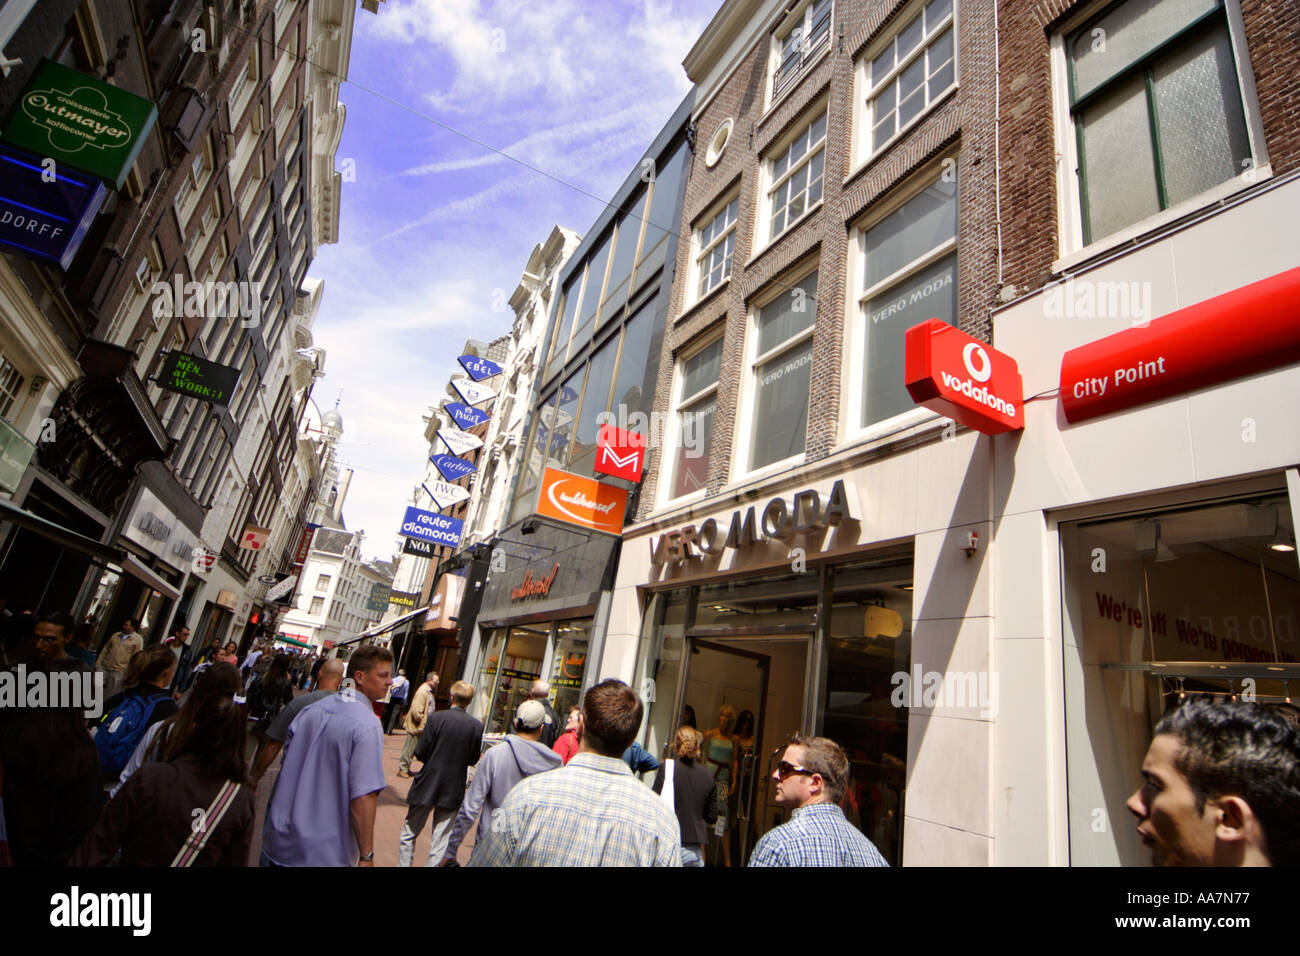 The popular shopping thoroughfare Kalverstraat in the centre of Amsterdam Holland - Stock Image